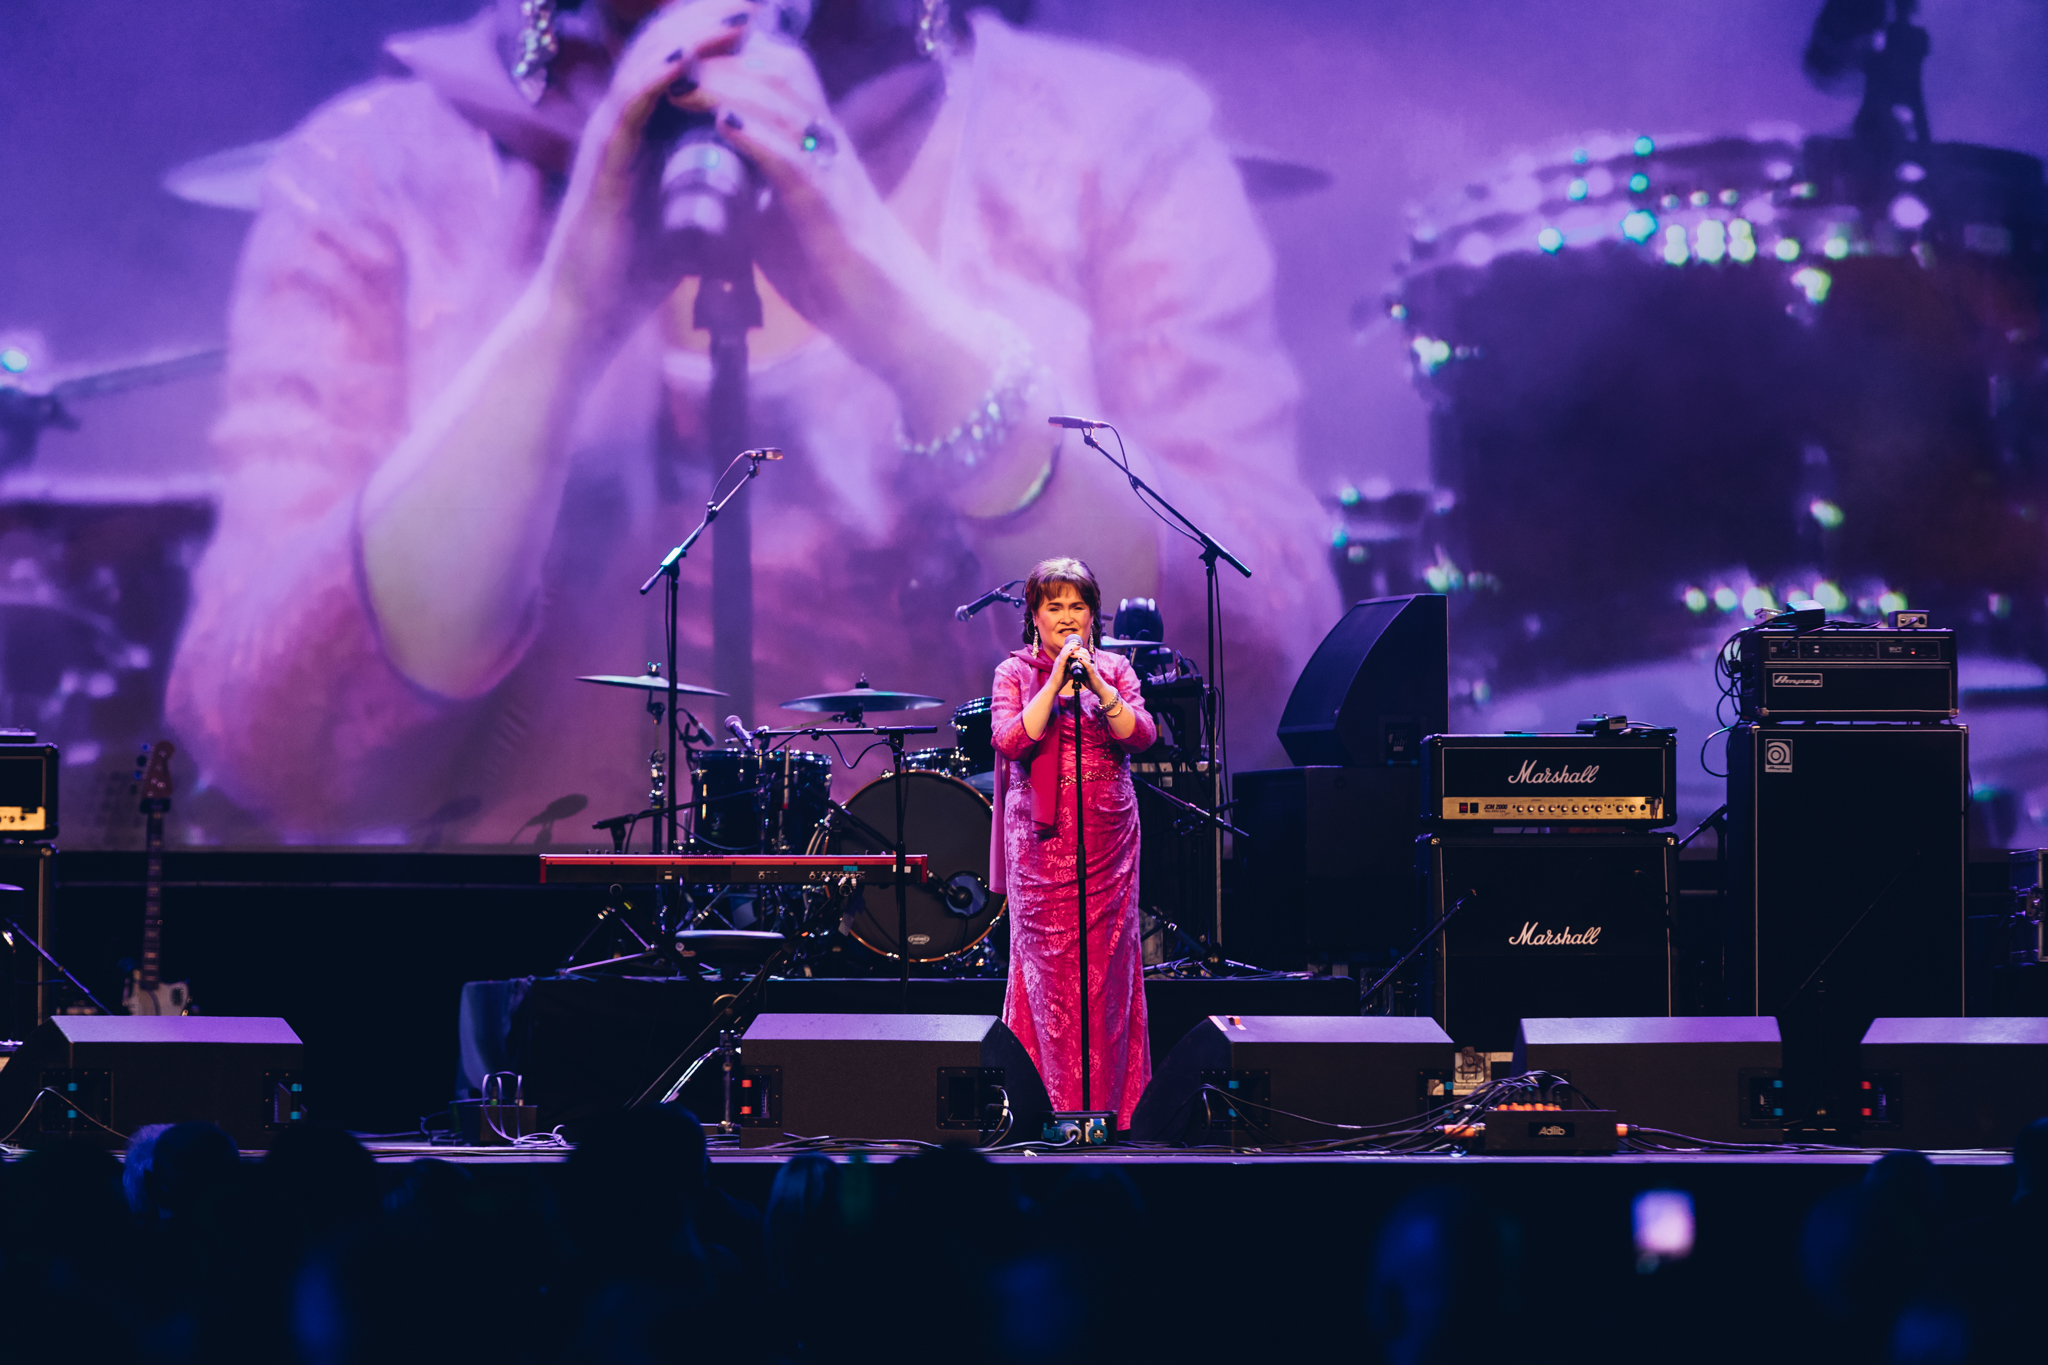 Susan Boyle performs on the night